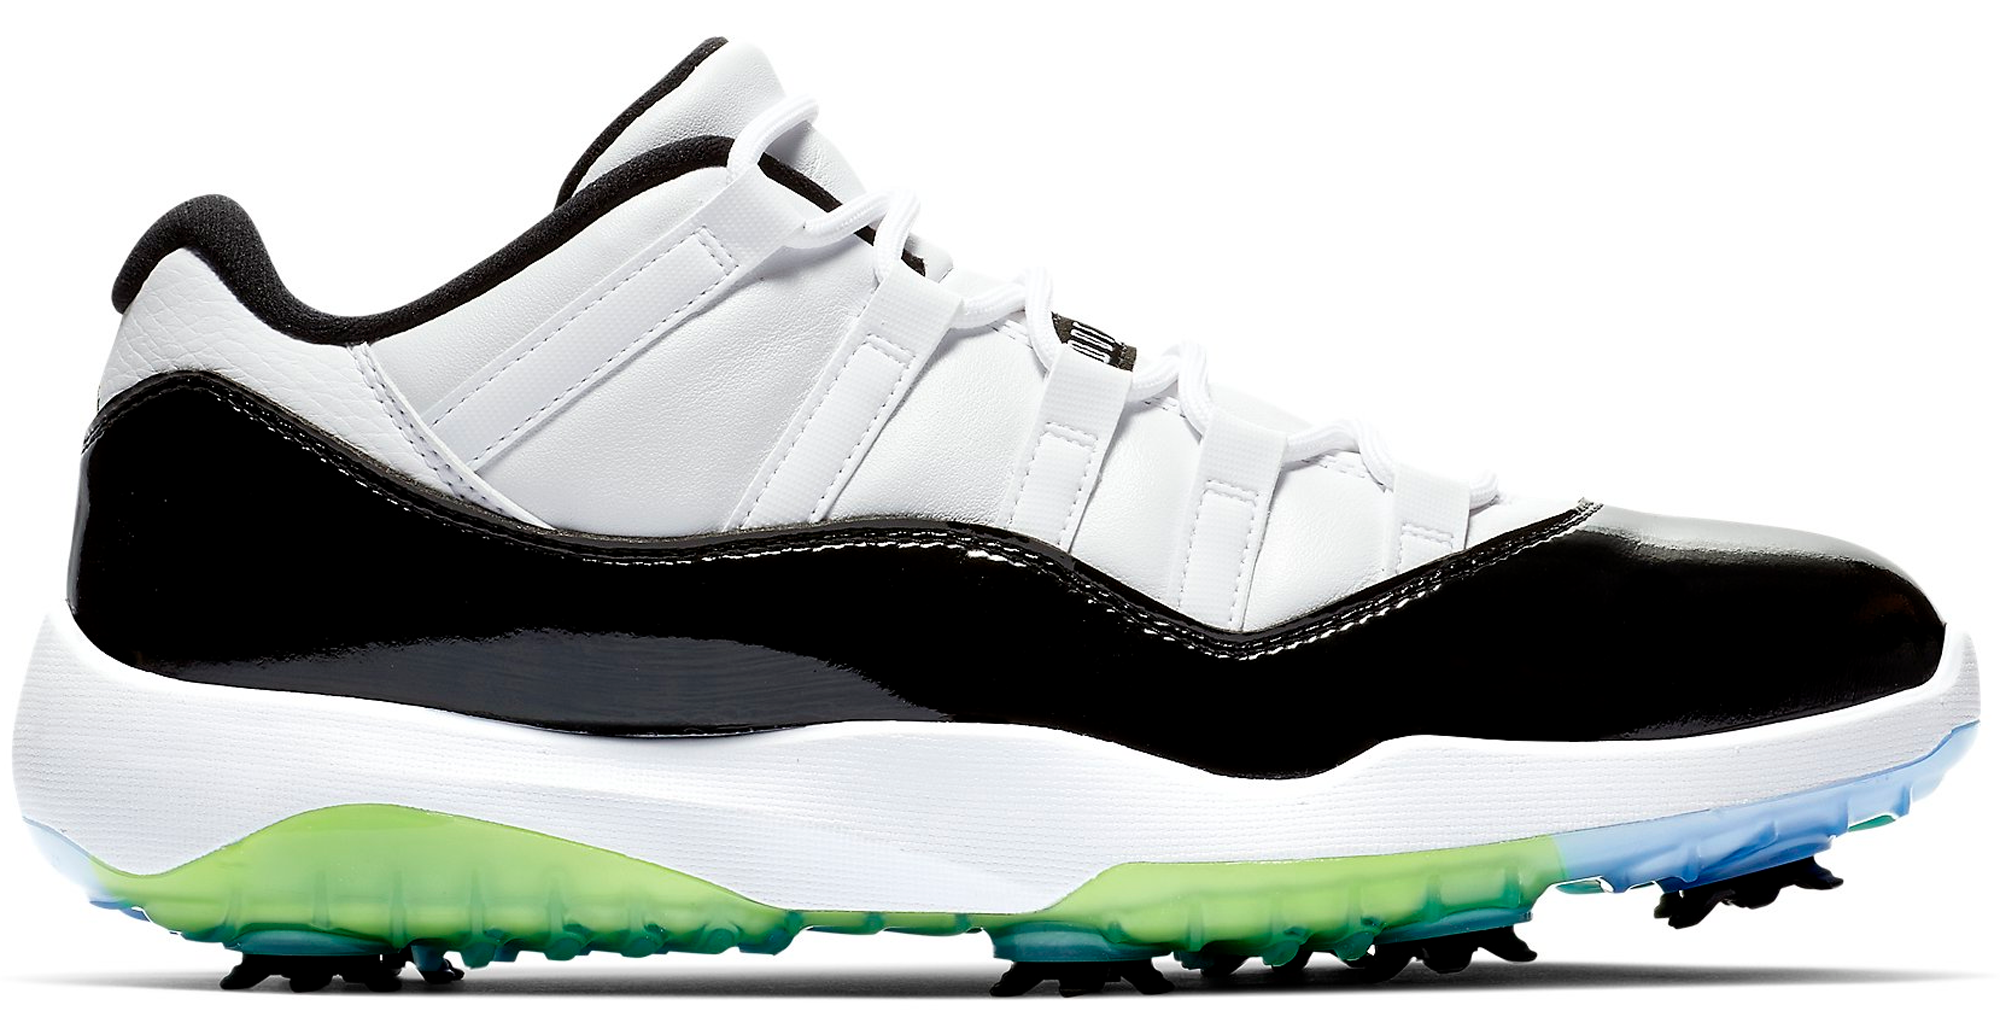 Jordan 11 Retro Low Golf Concord